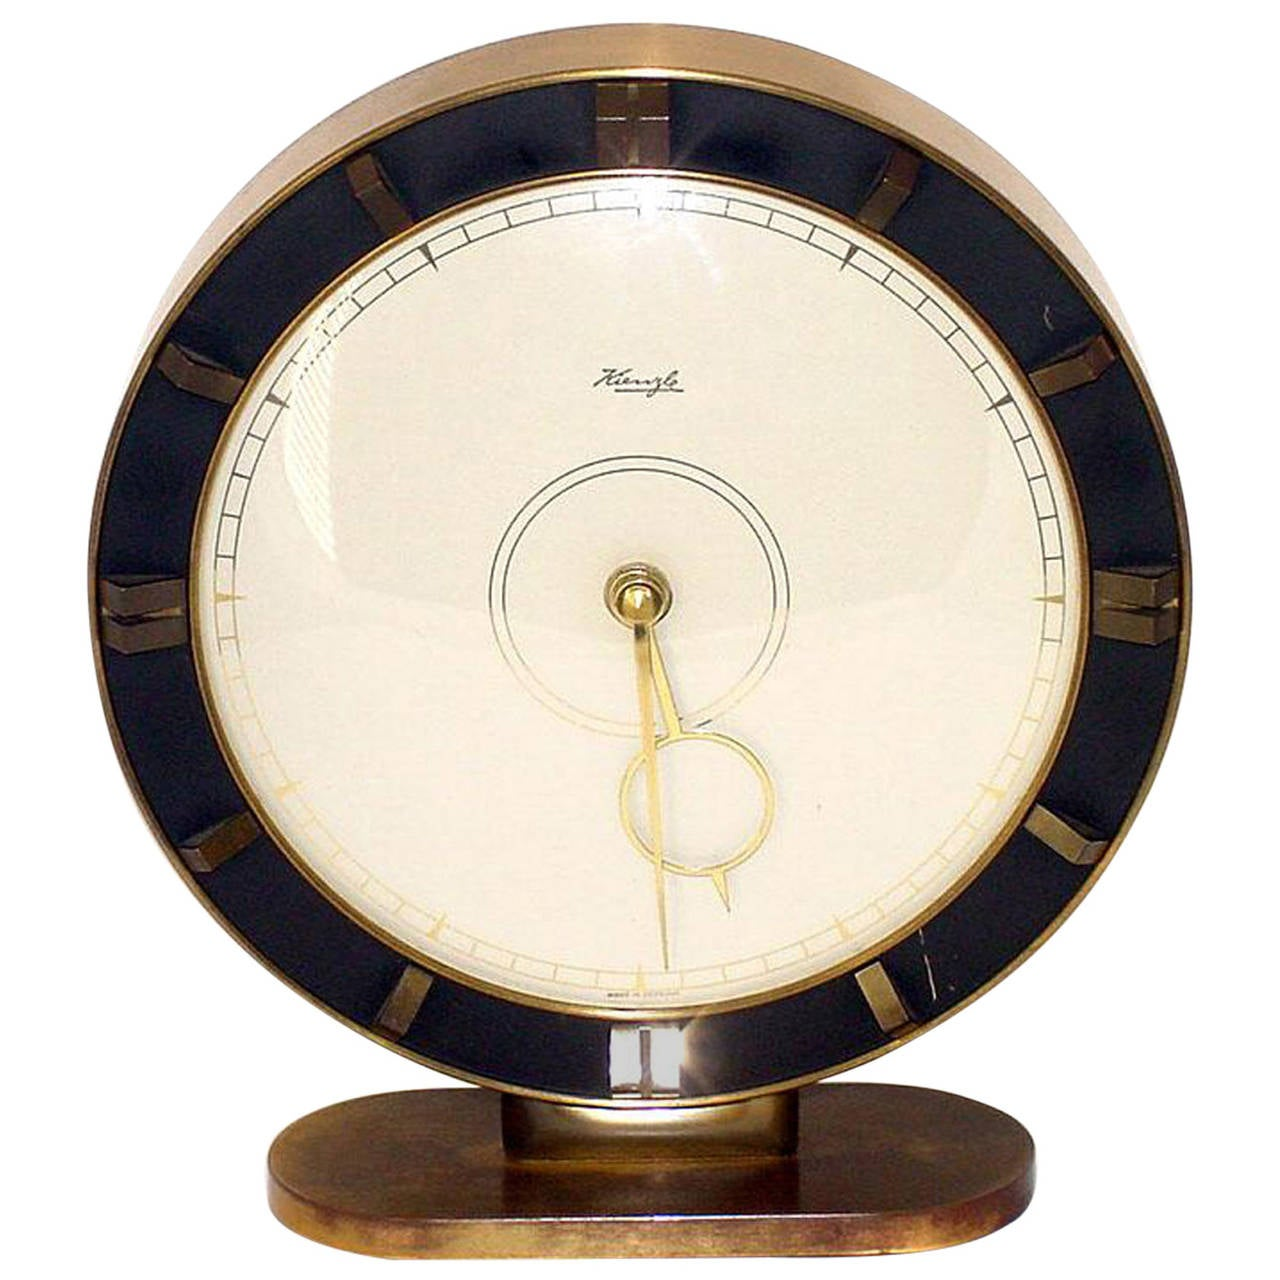 Big Kienzle Art Deco Table Clock, 1930s 1